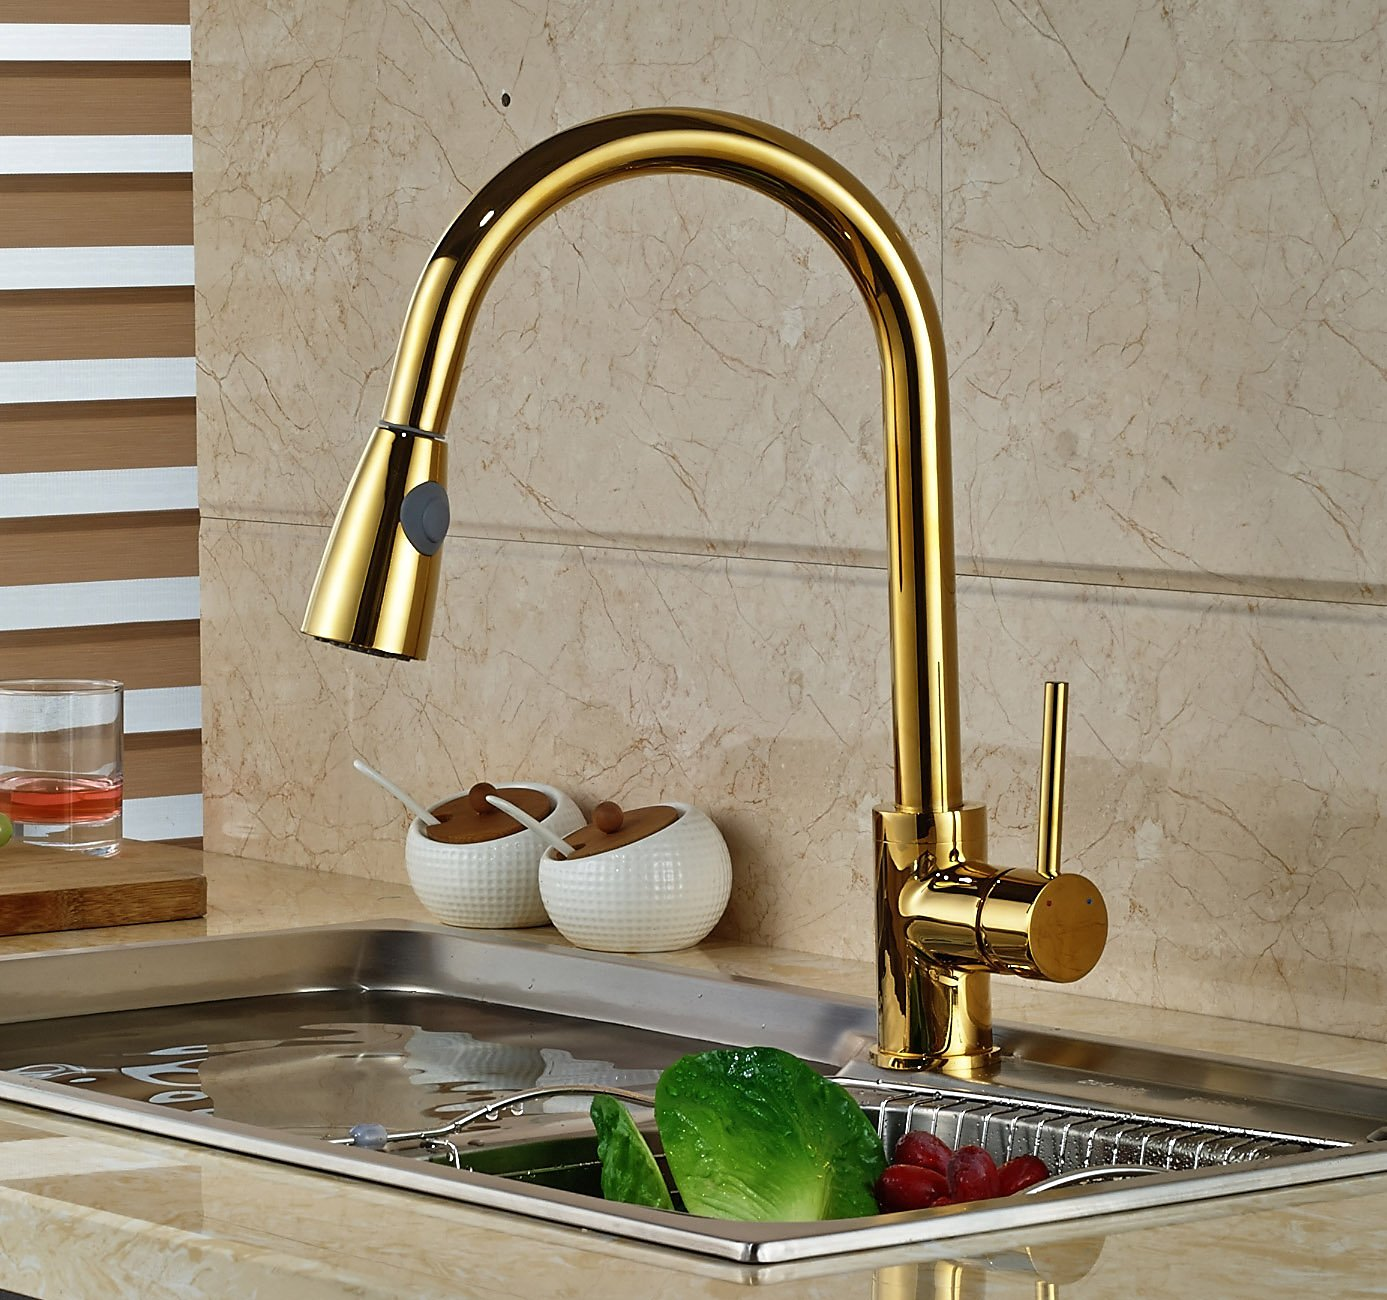 Broward Mounted Kitchen Faucet, Gold